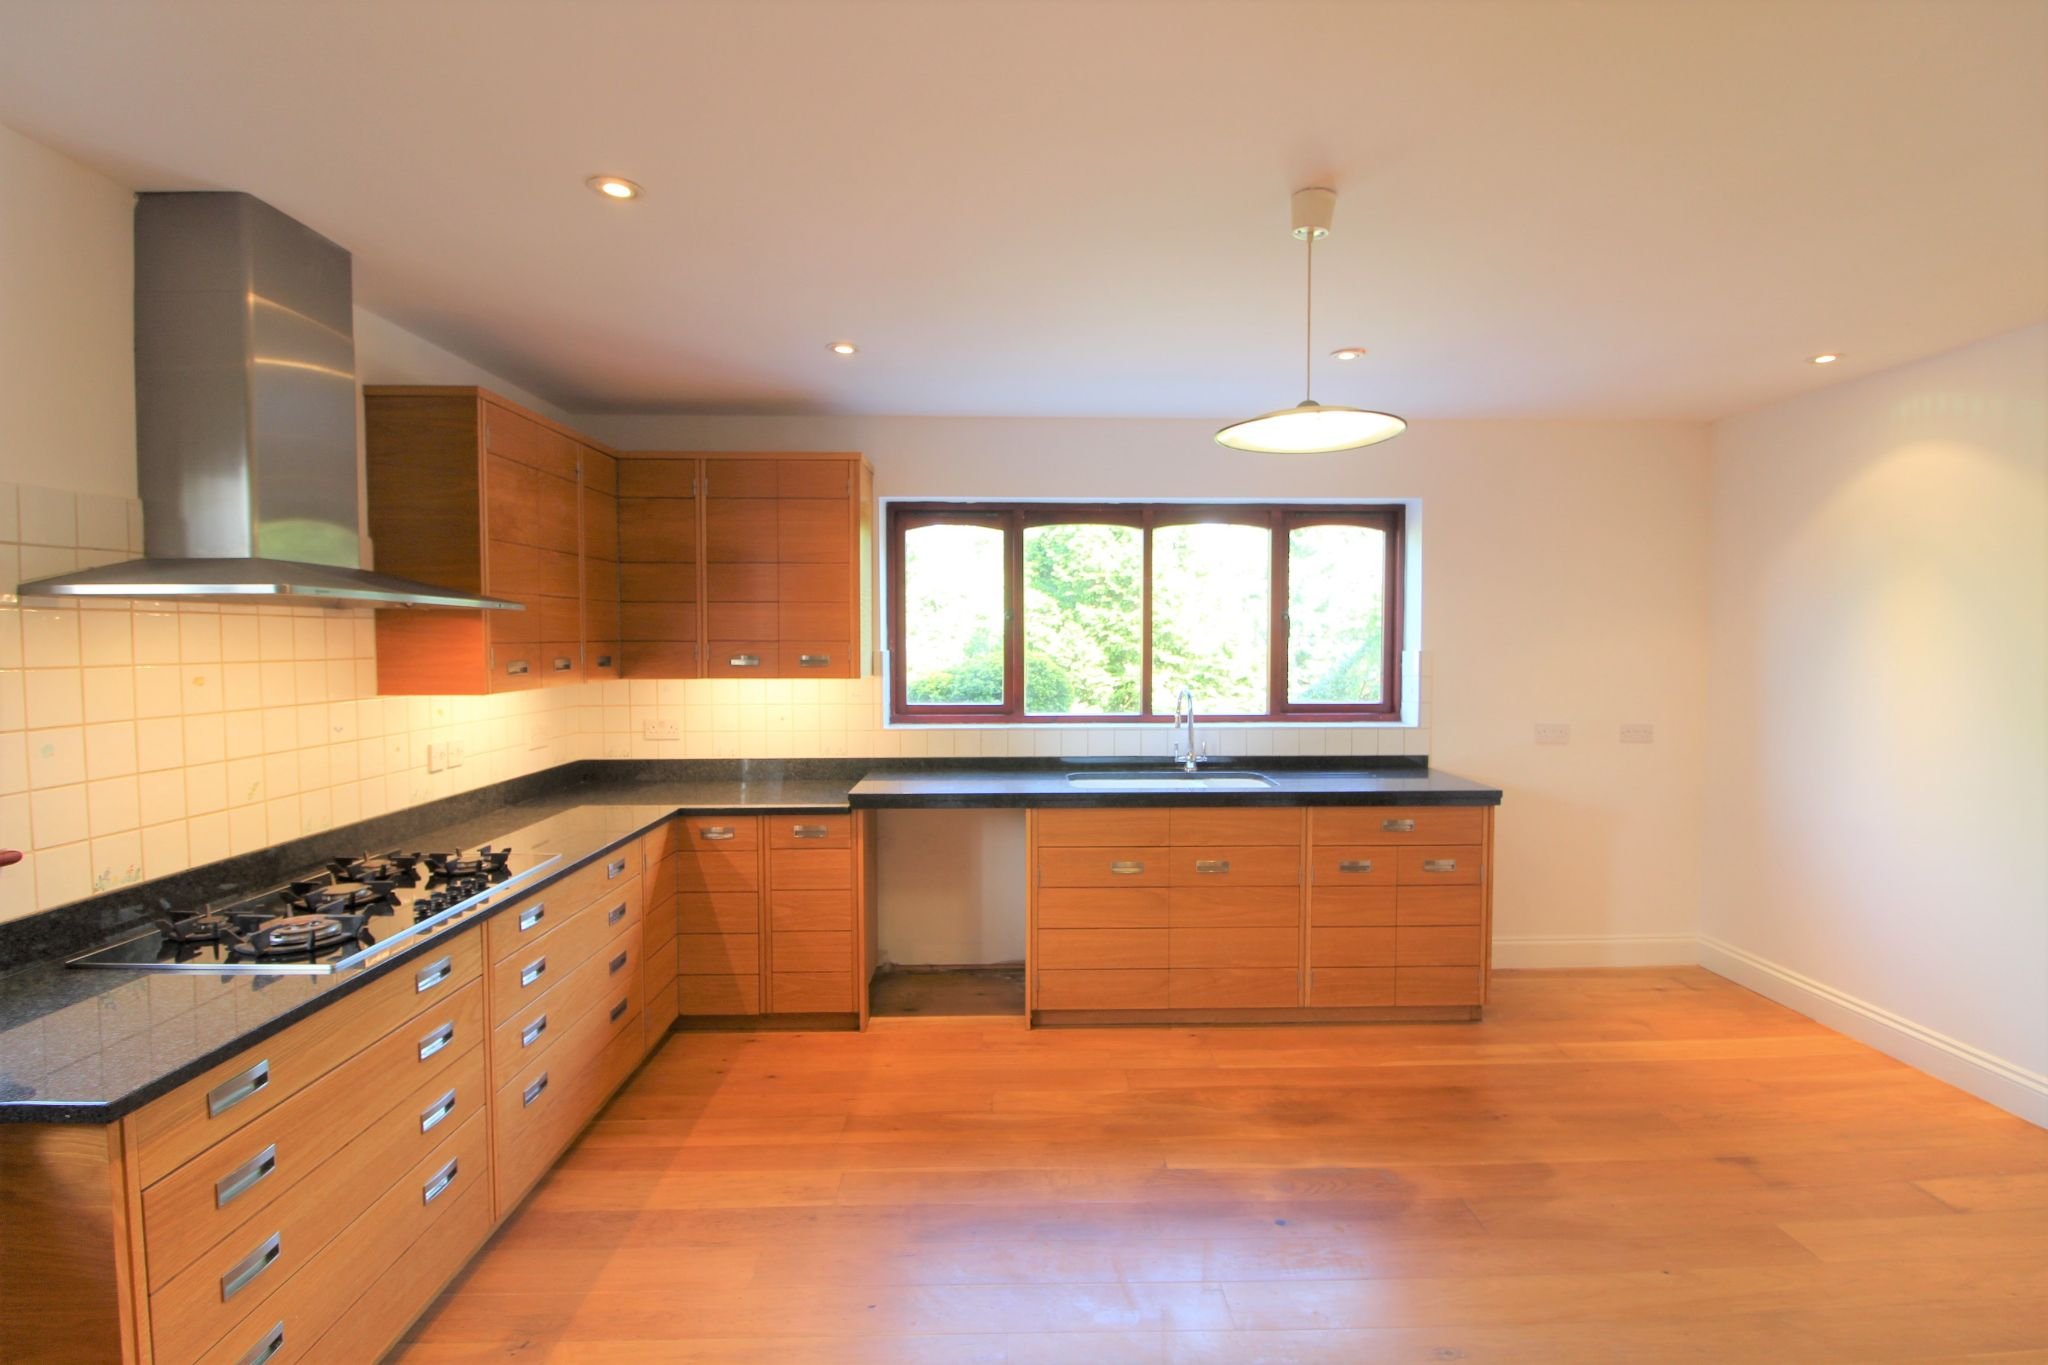 4 bedroom detached house SSTC in Cuffley - Photograph 3